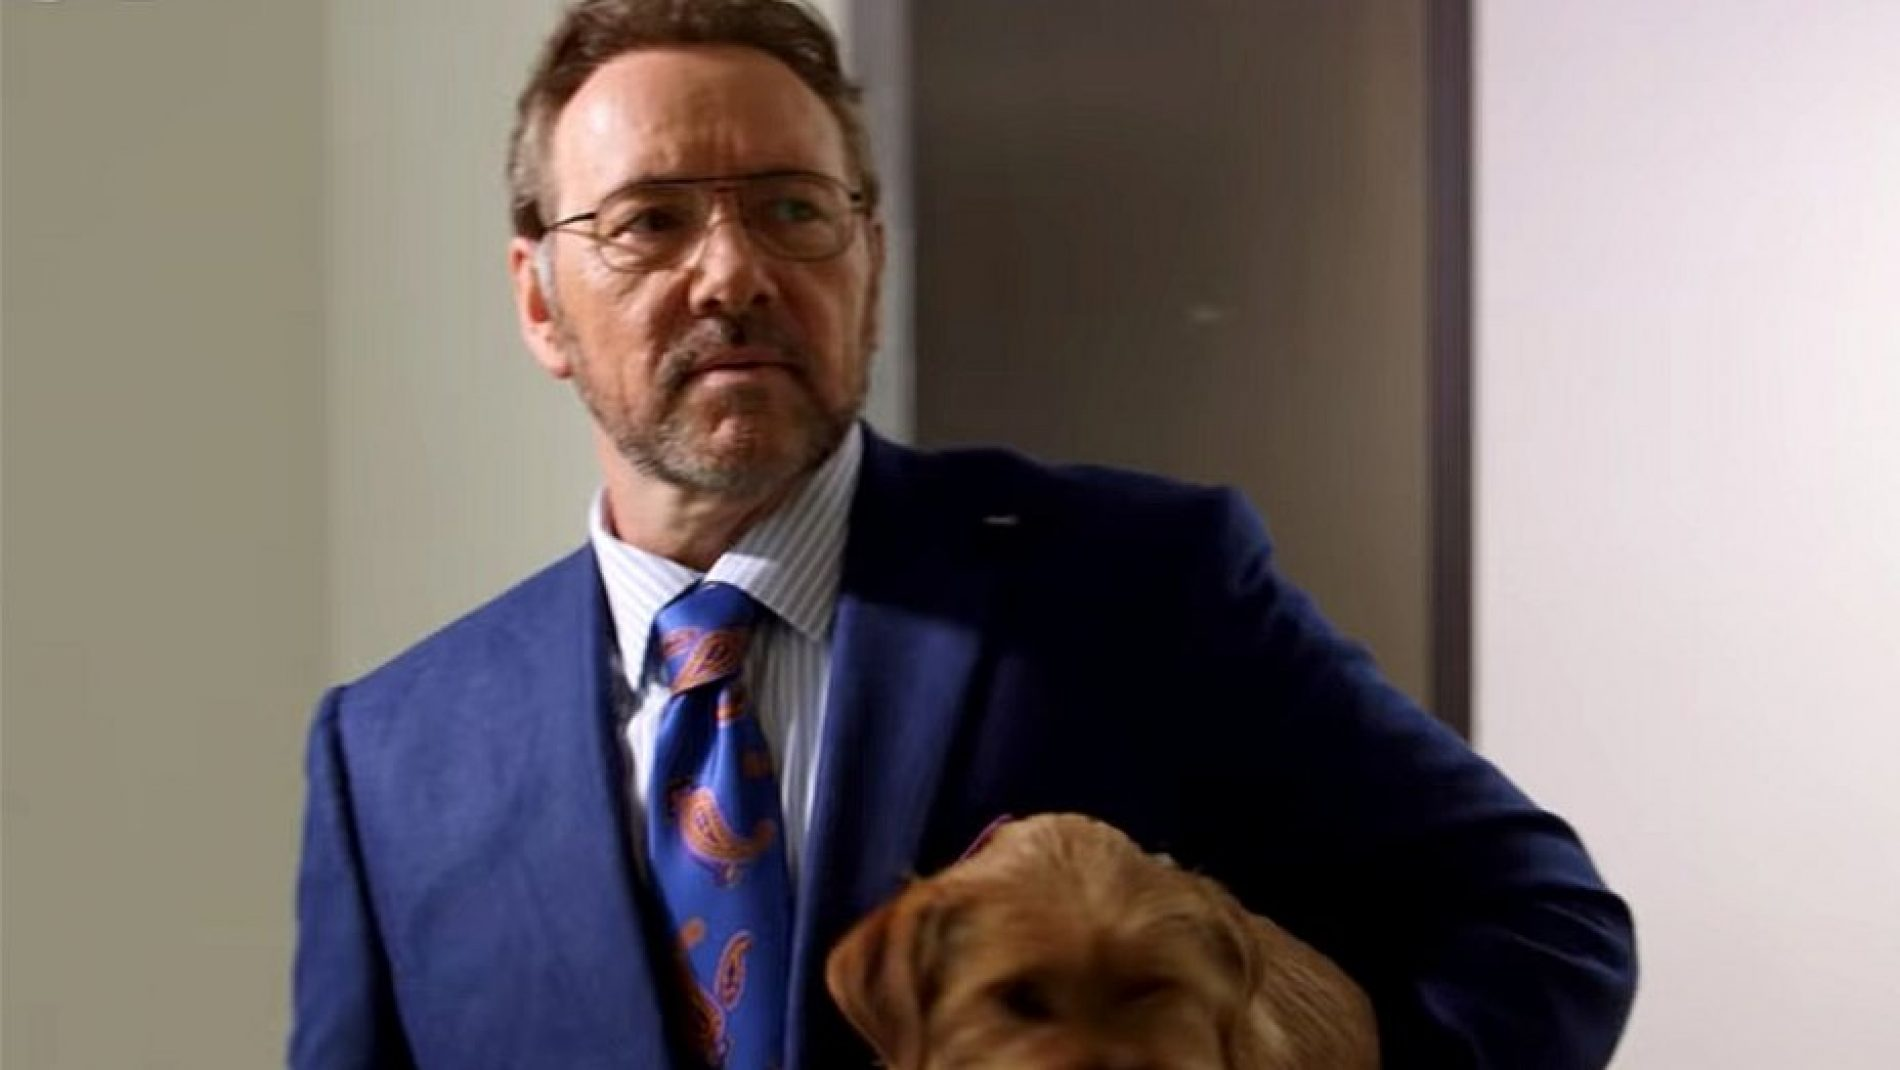 Kevin Spacey's new movie flops at the box office